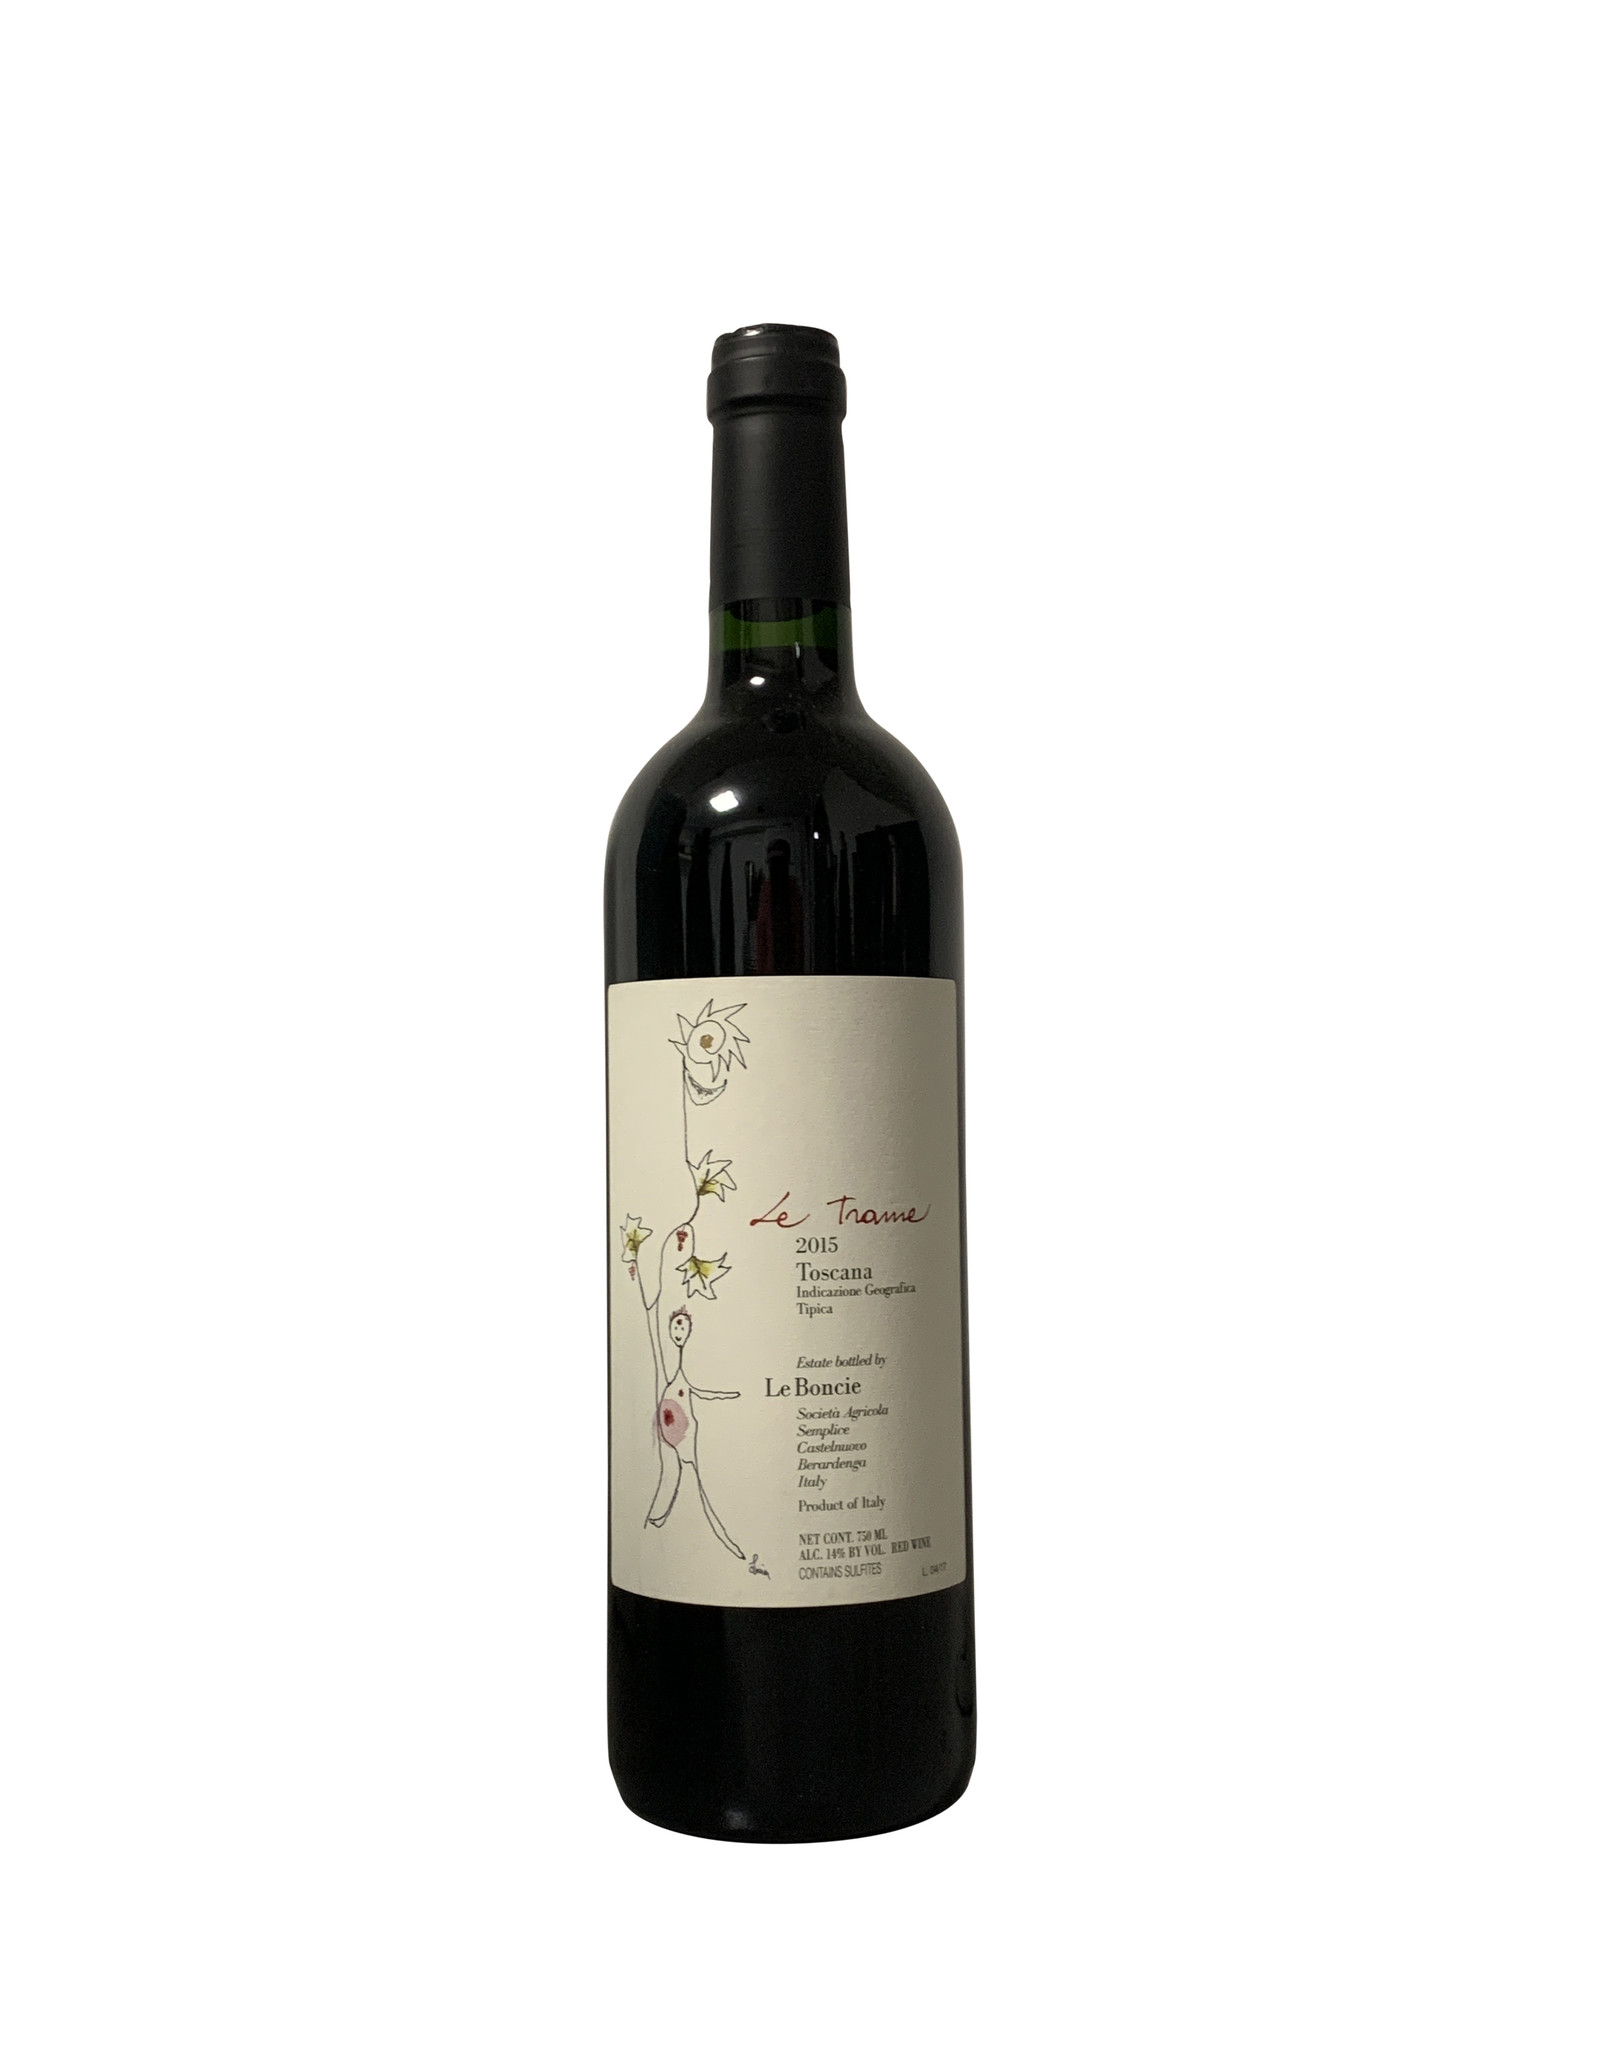 Podere Le Boncie Podere Le Boncie Le Trame Rosso di Toscana IGT 2015, Tuscany, Italy (750mL)